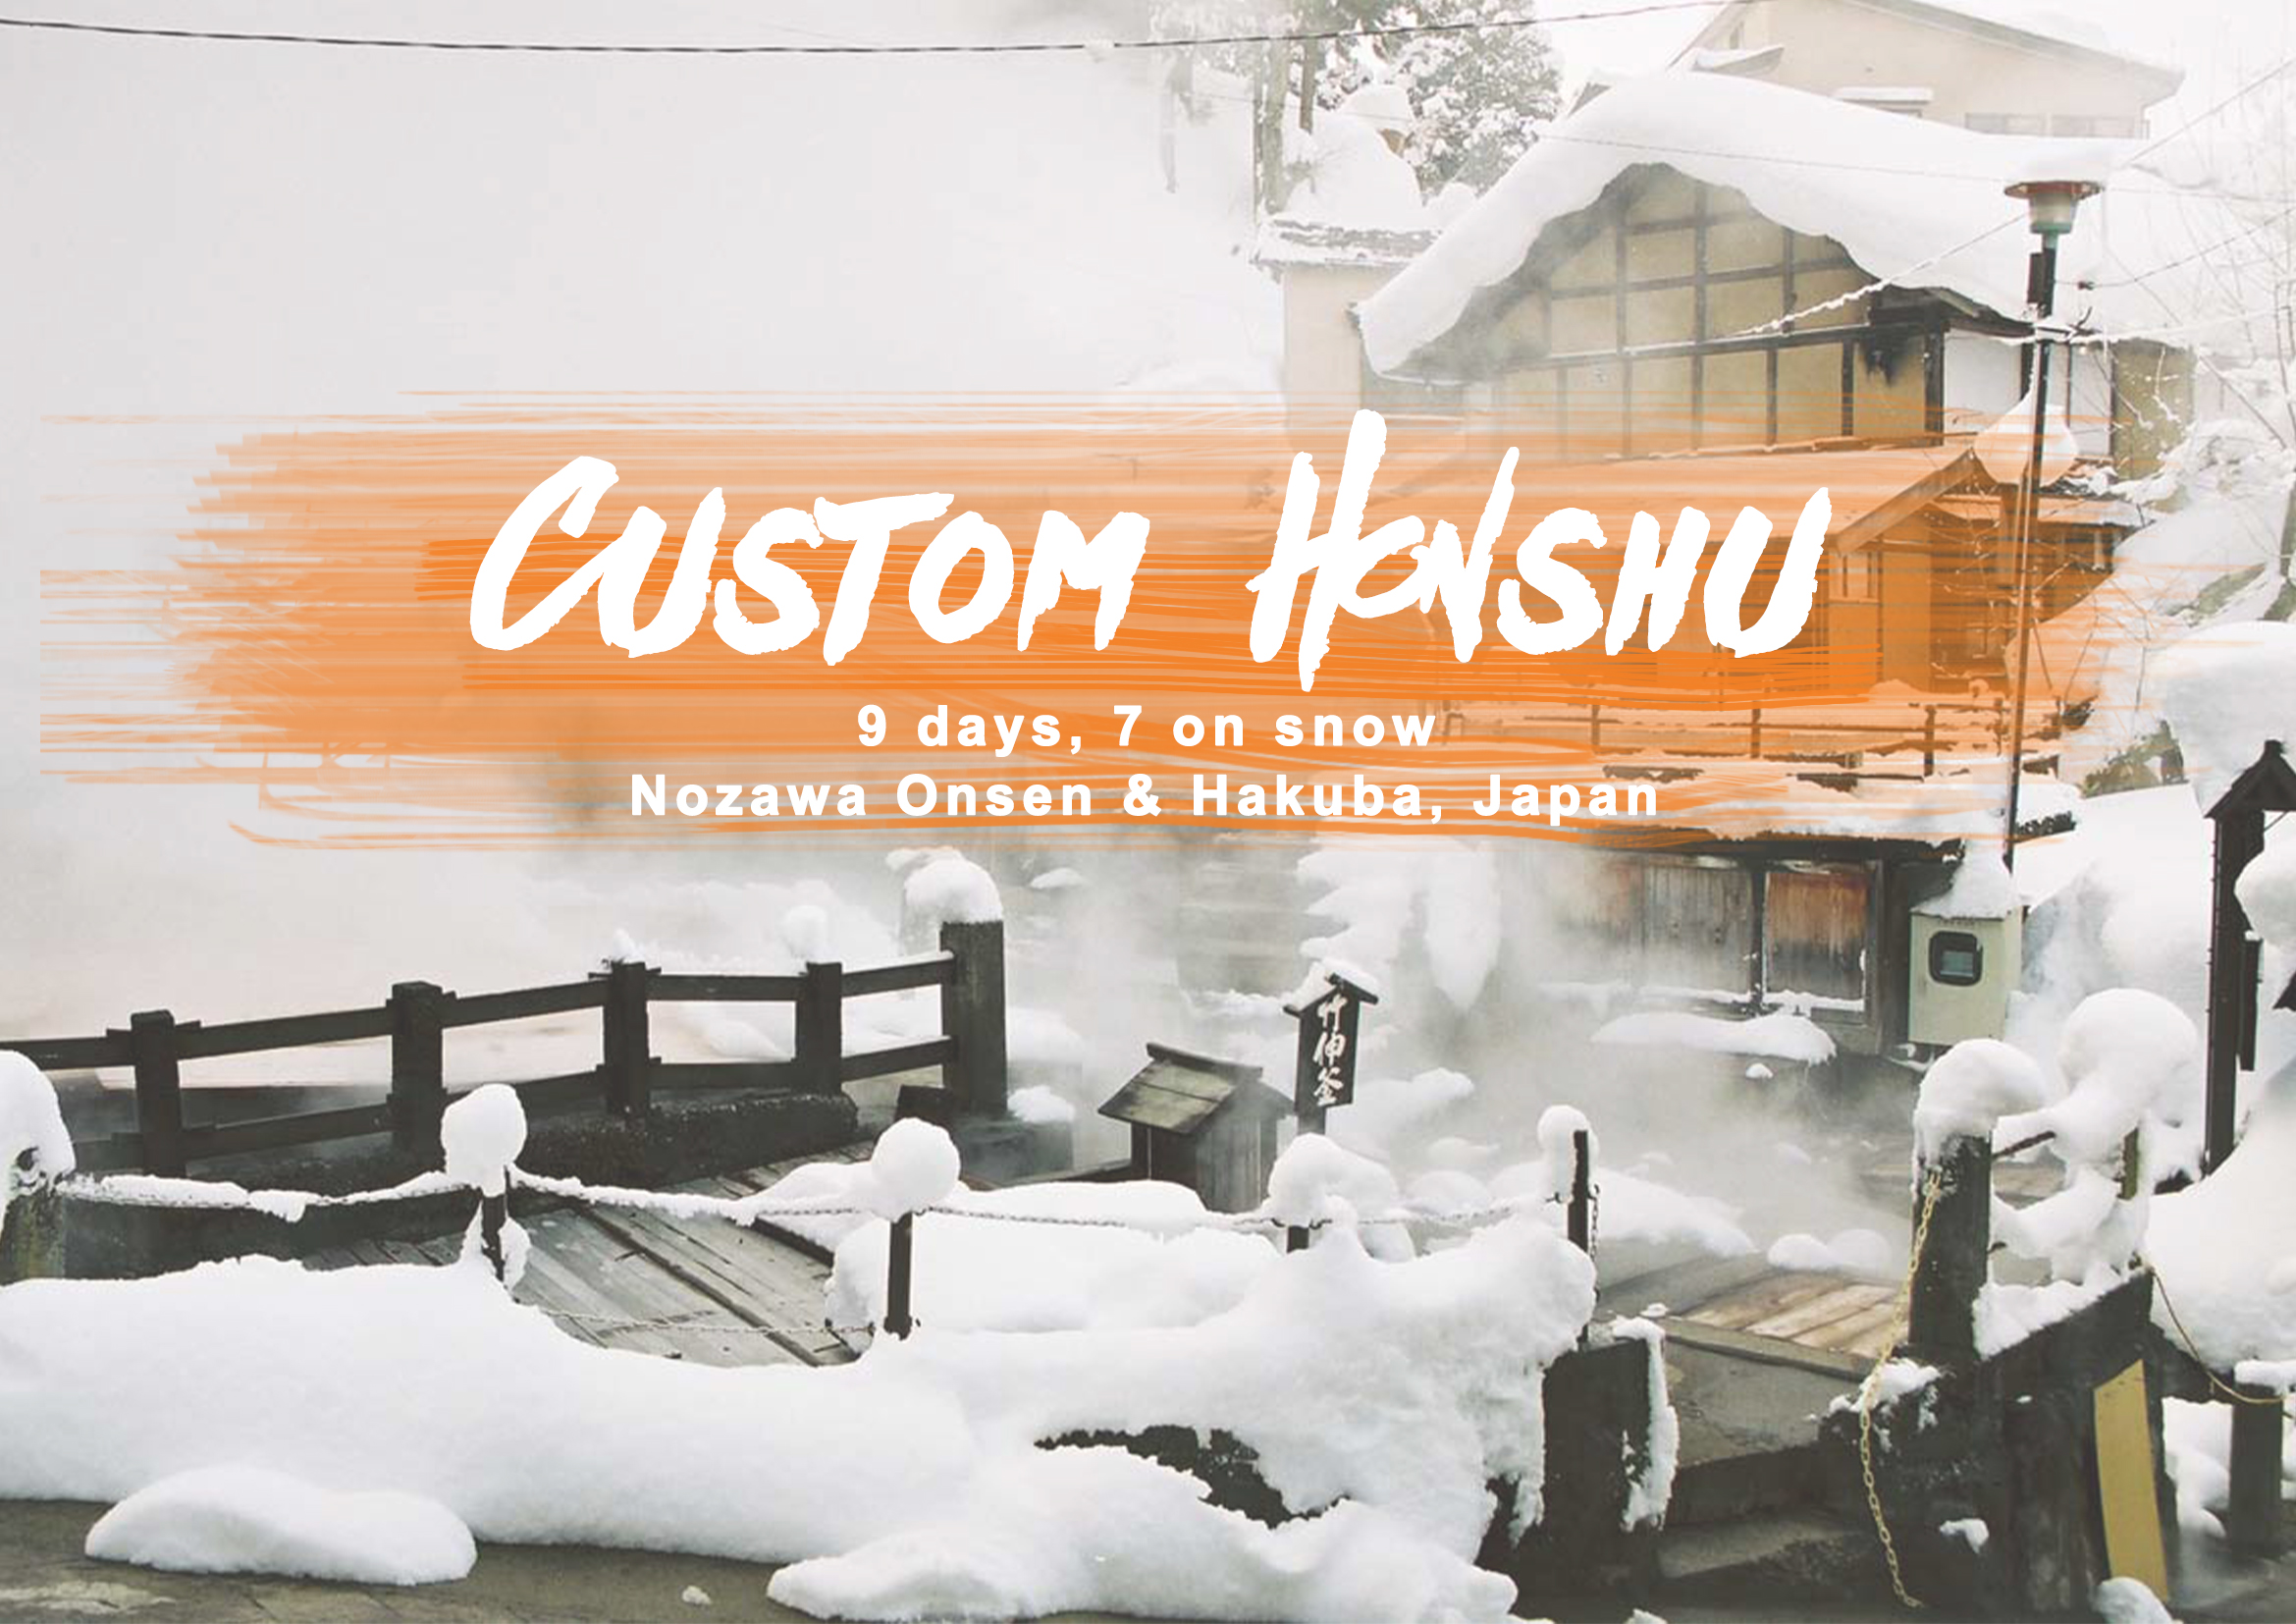 Honshu Custom tour 2020 with First Tours